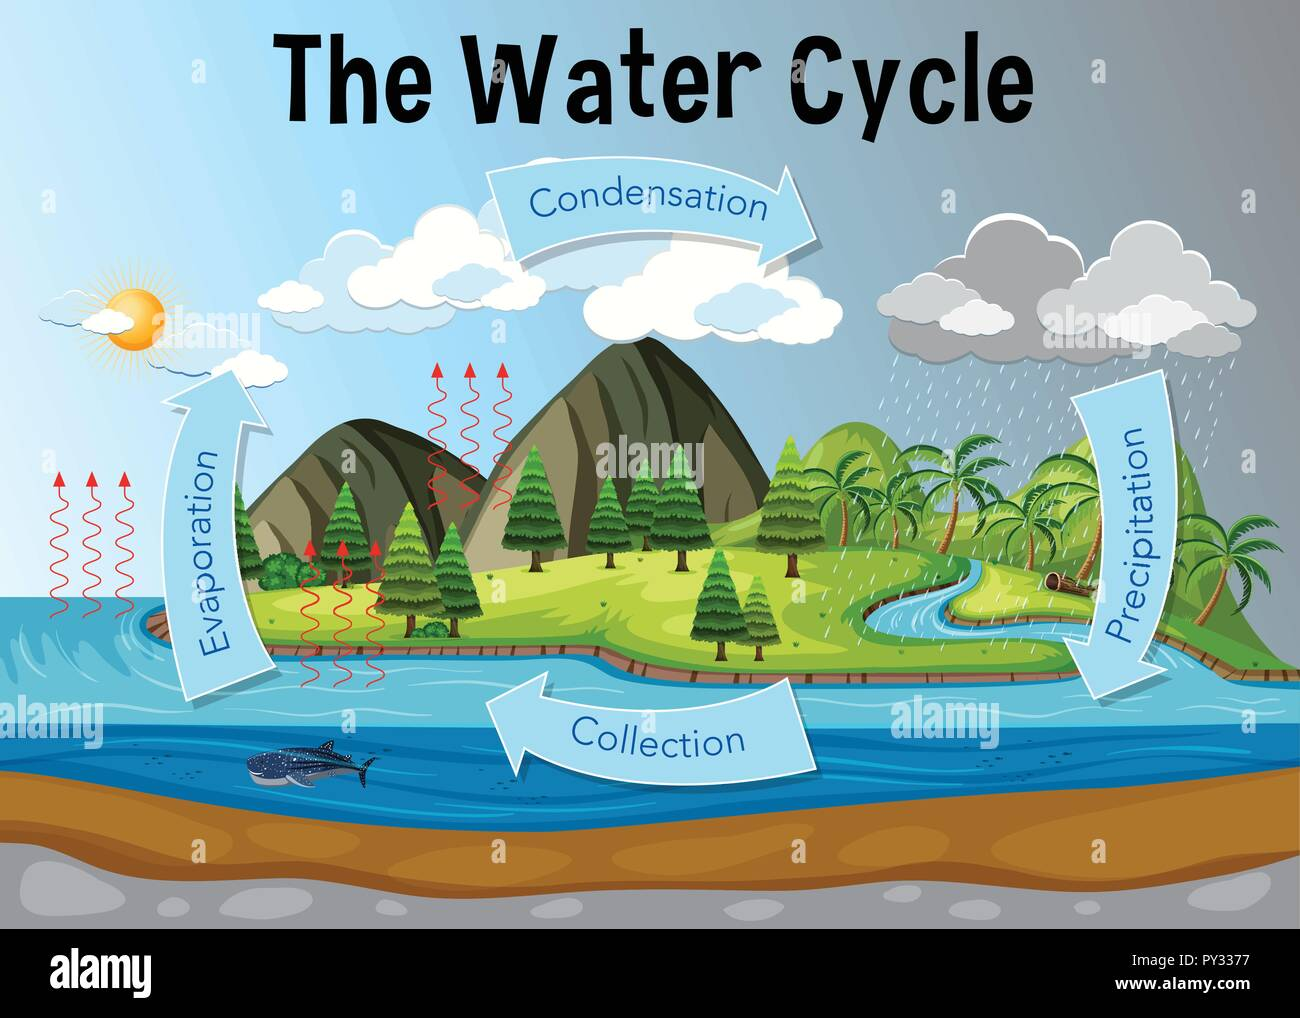 The water cycle diagram illustration stock image